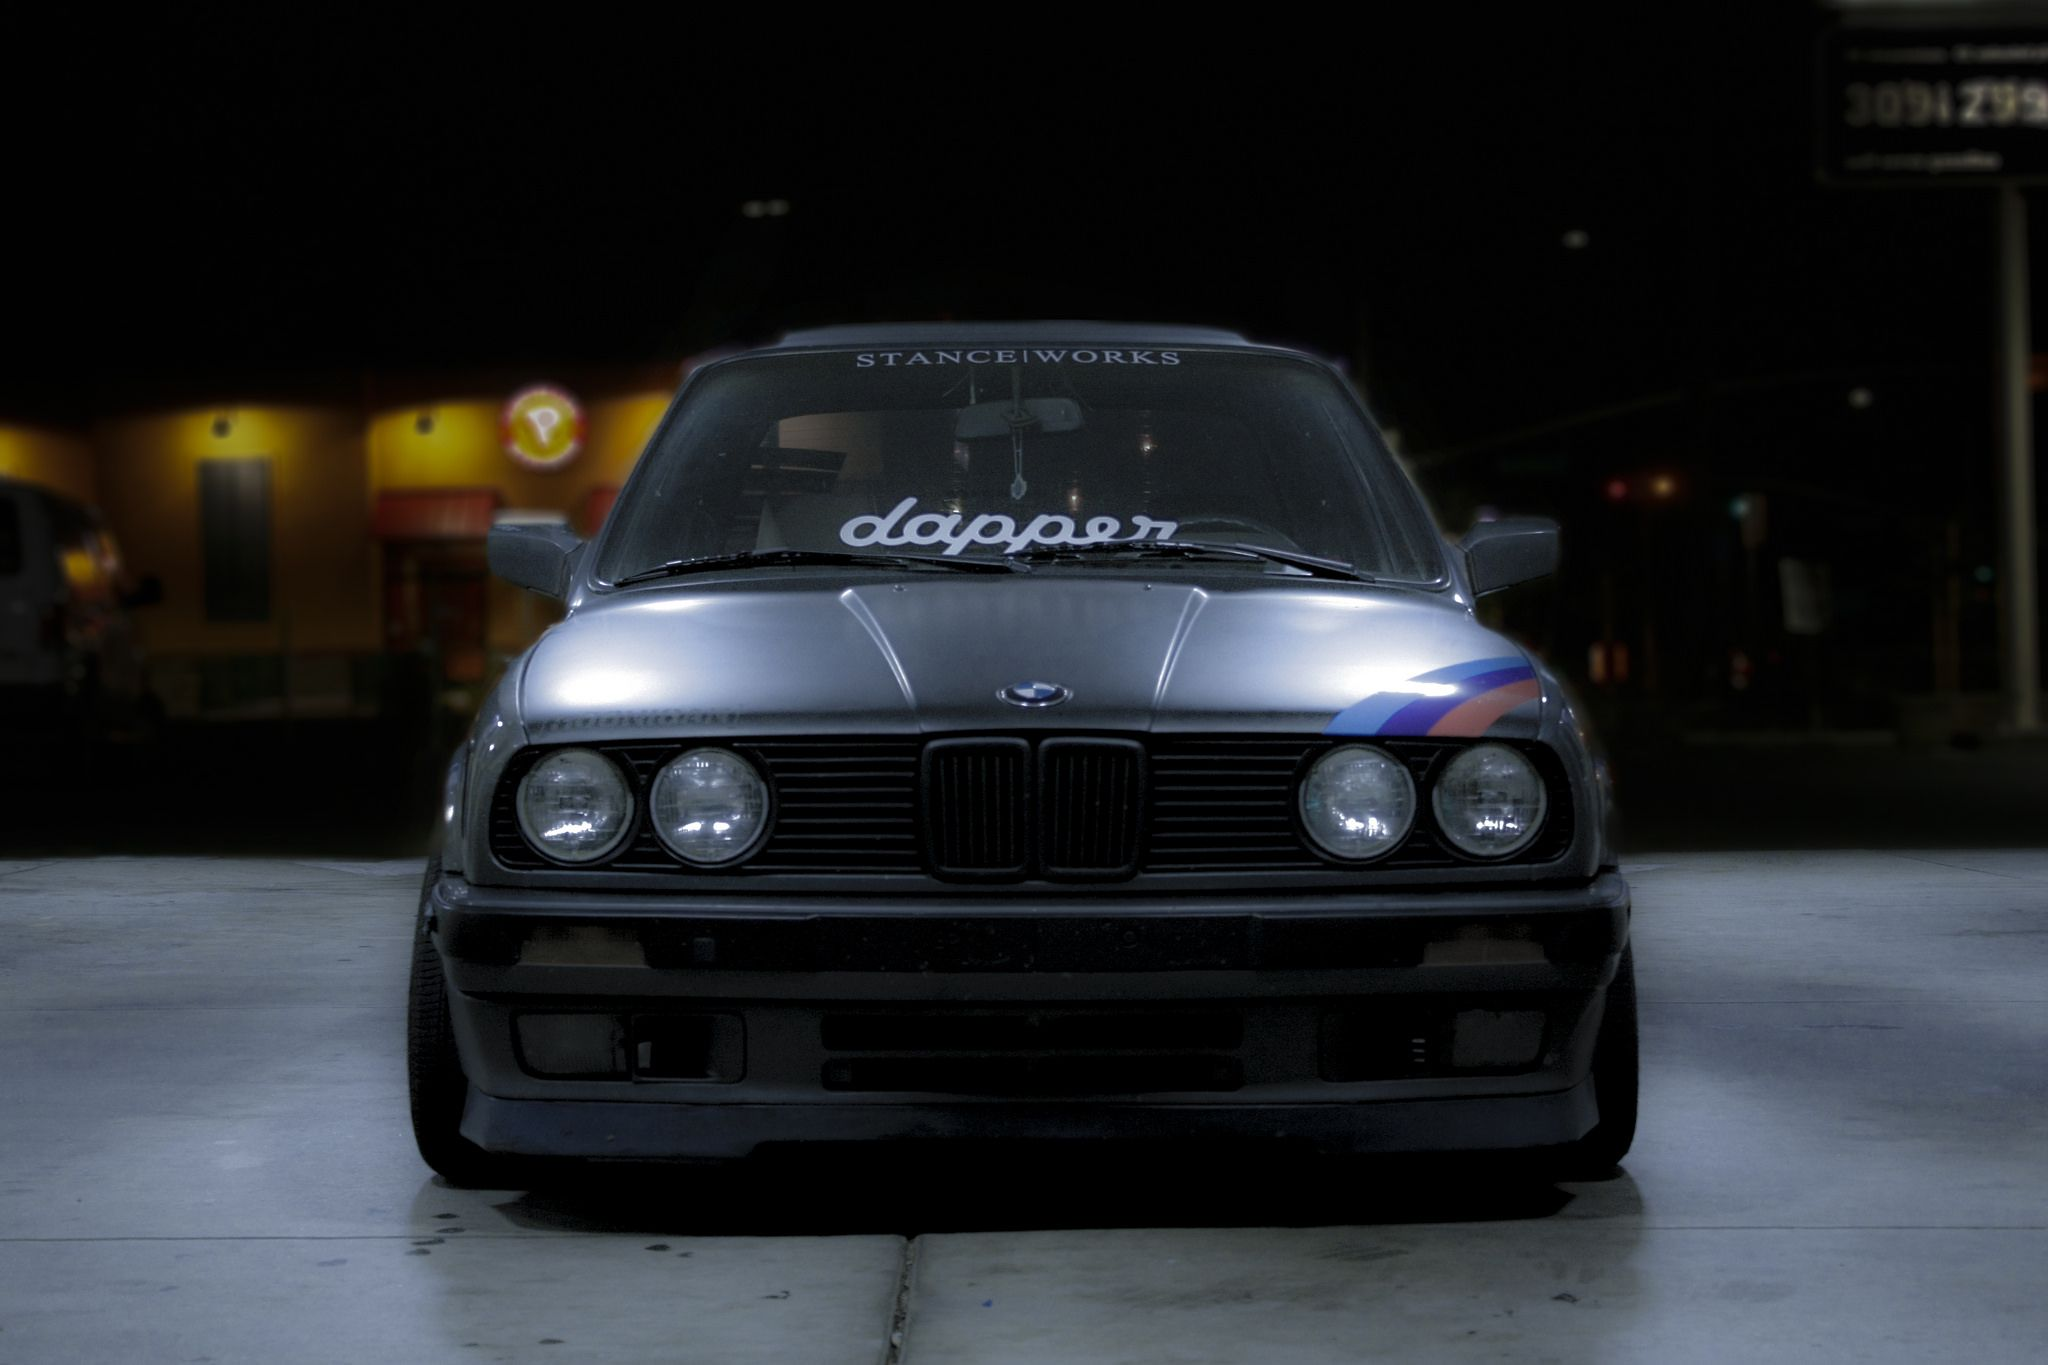 Garage Auto Nation E30 001 Bmw E30 Pinterest Coches And Autos